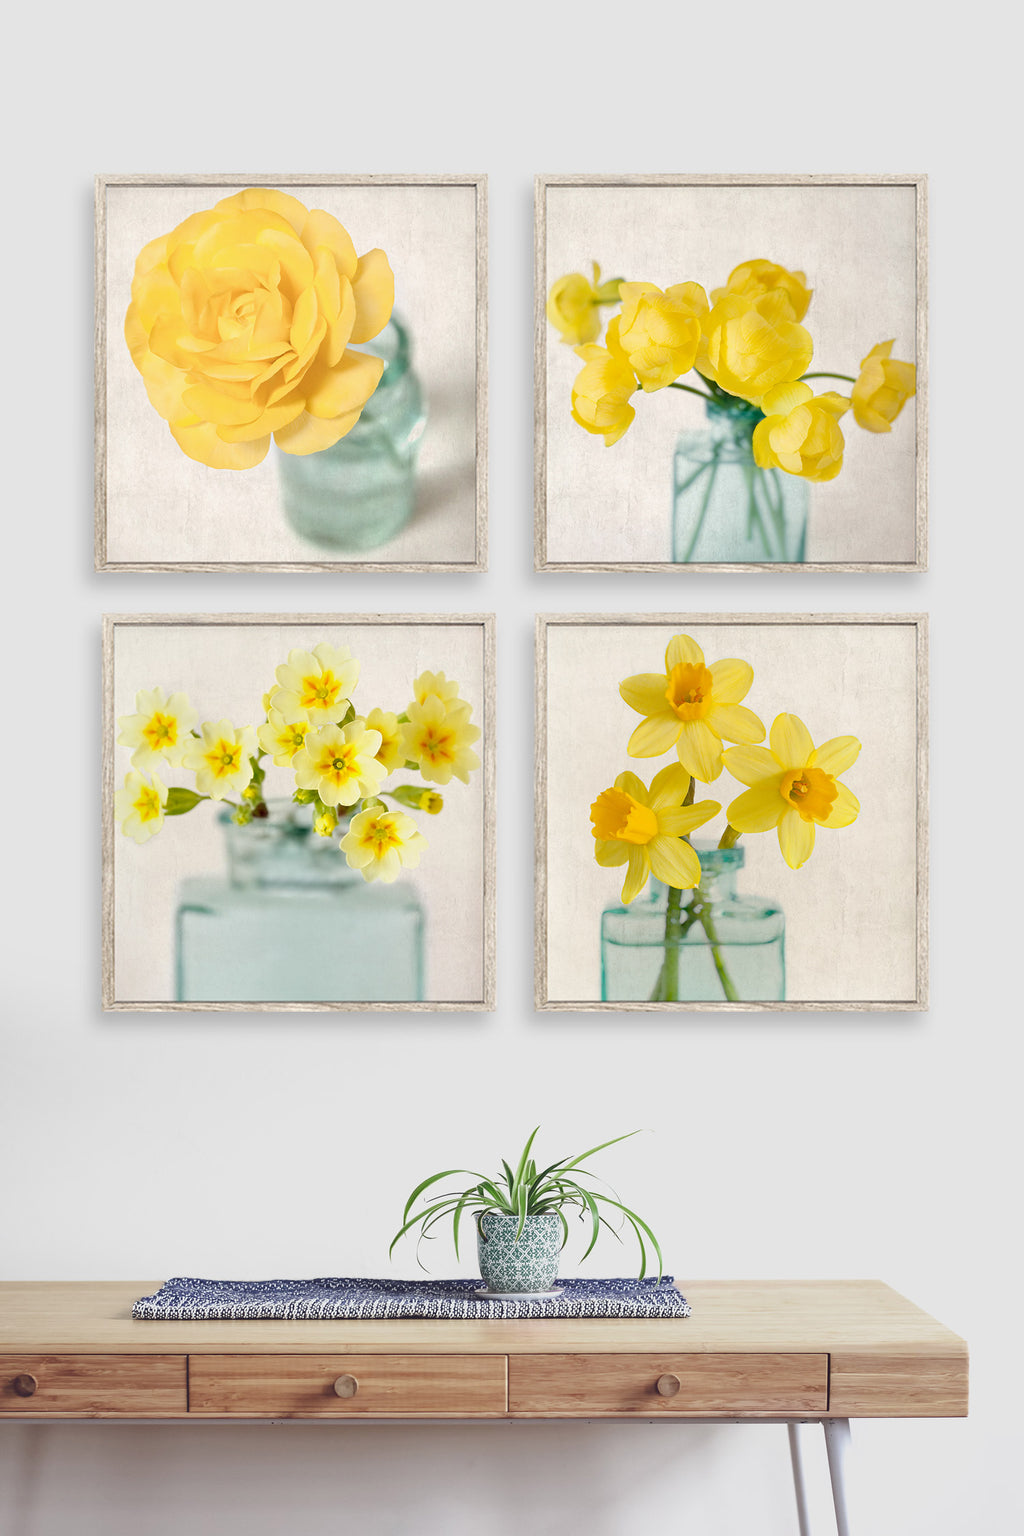 Set of 4 yellow flower photographs